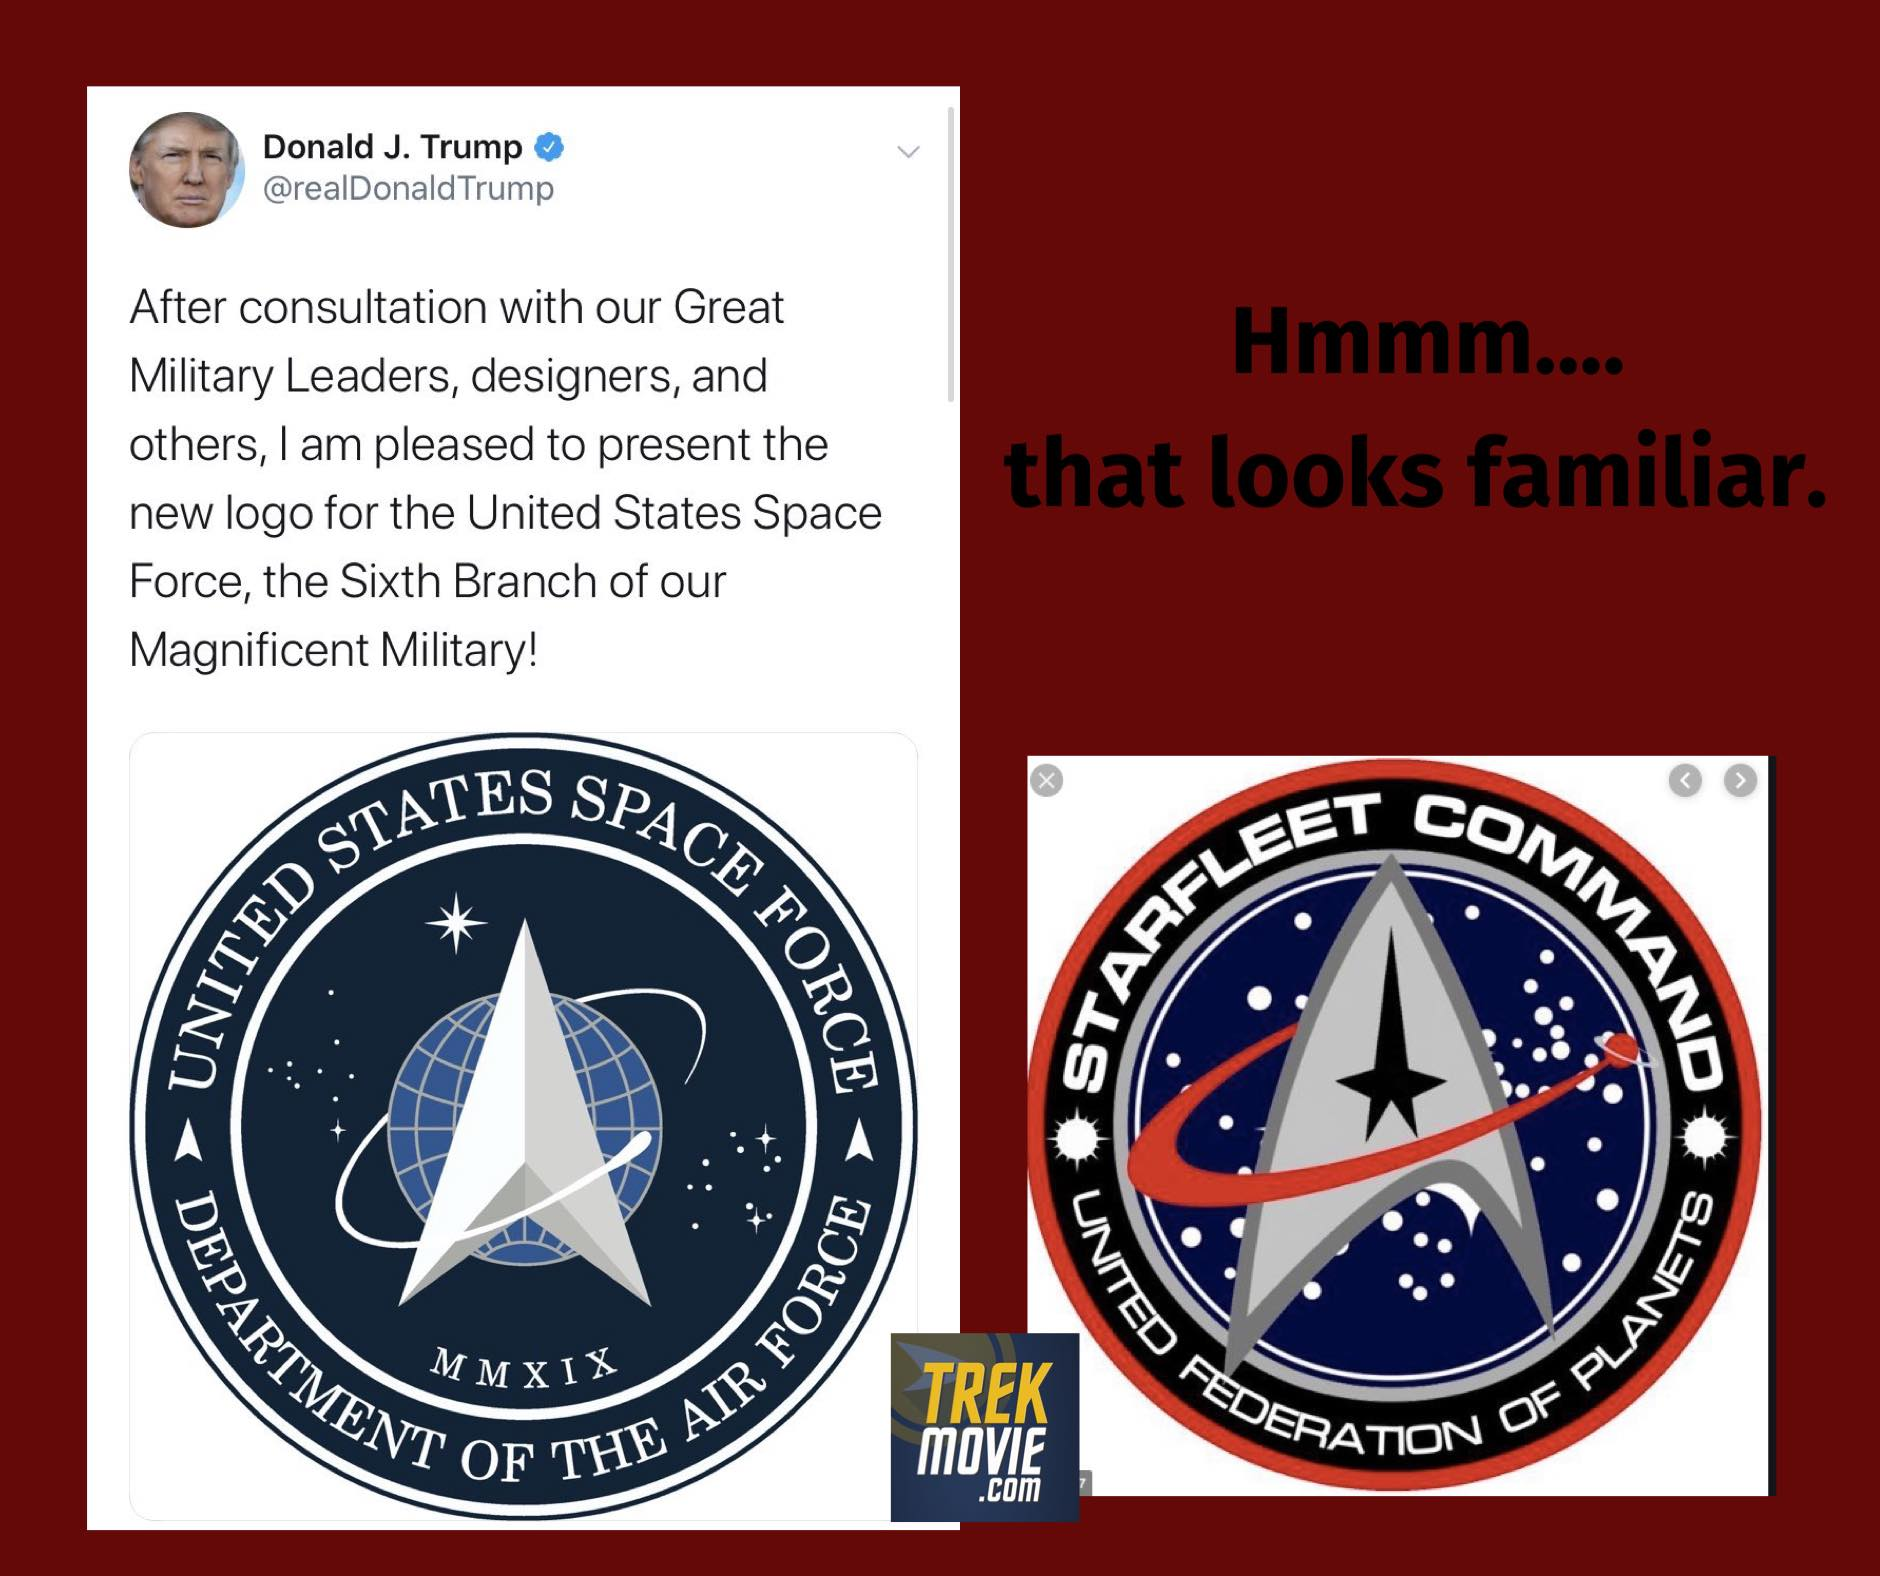 The US Space Force Logo is bascially the Starfleet logo